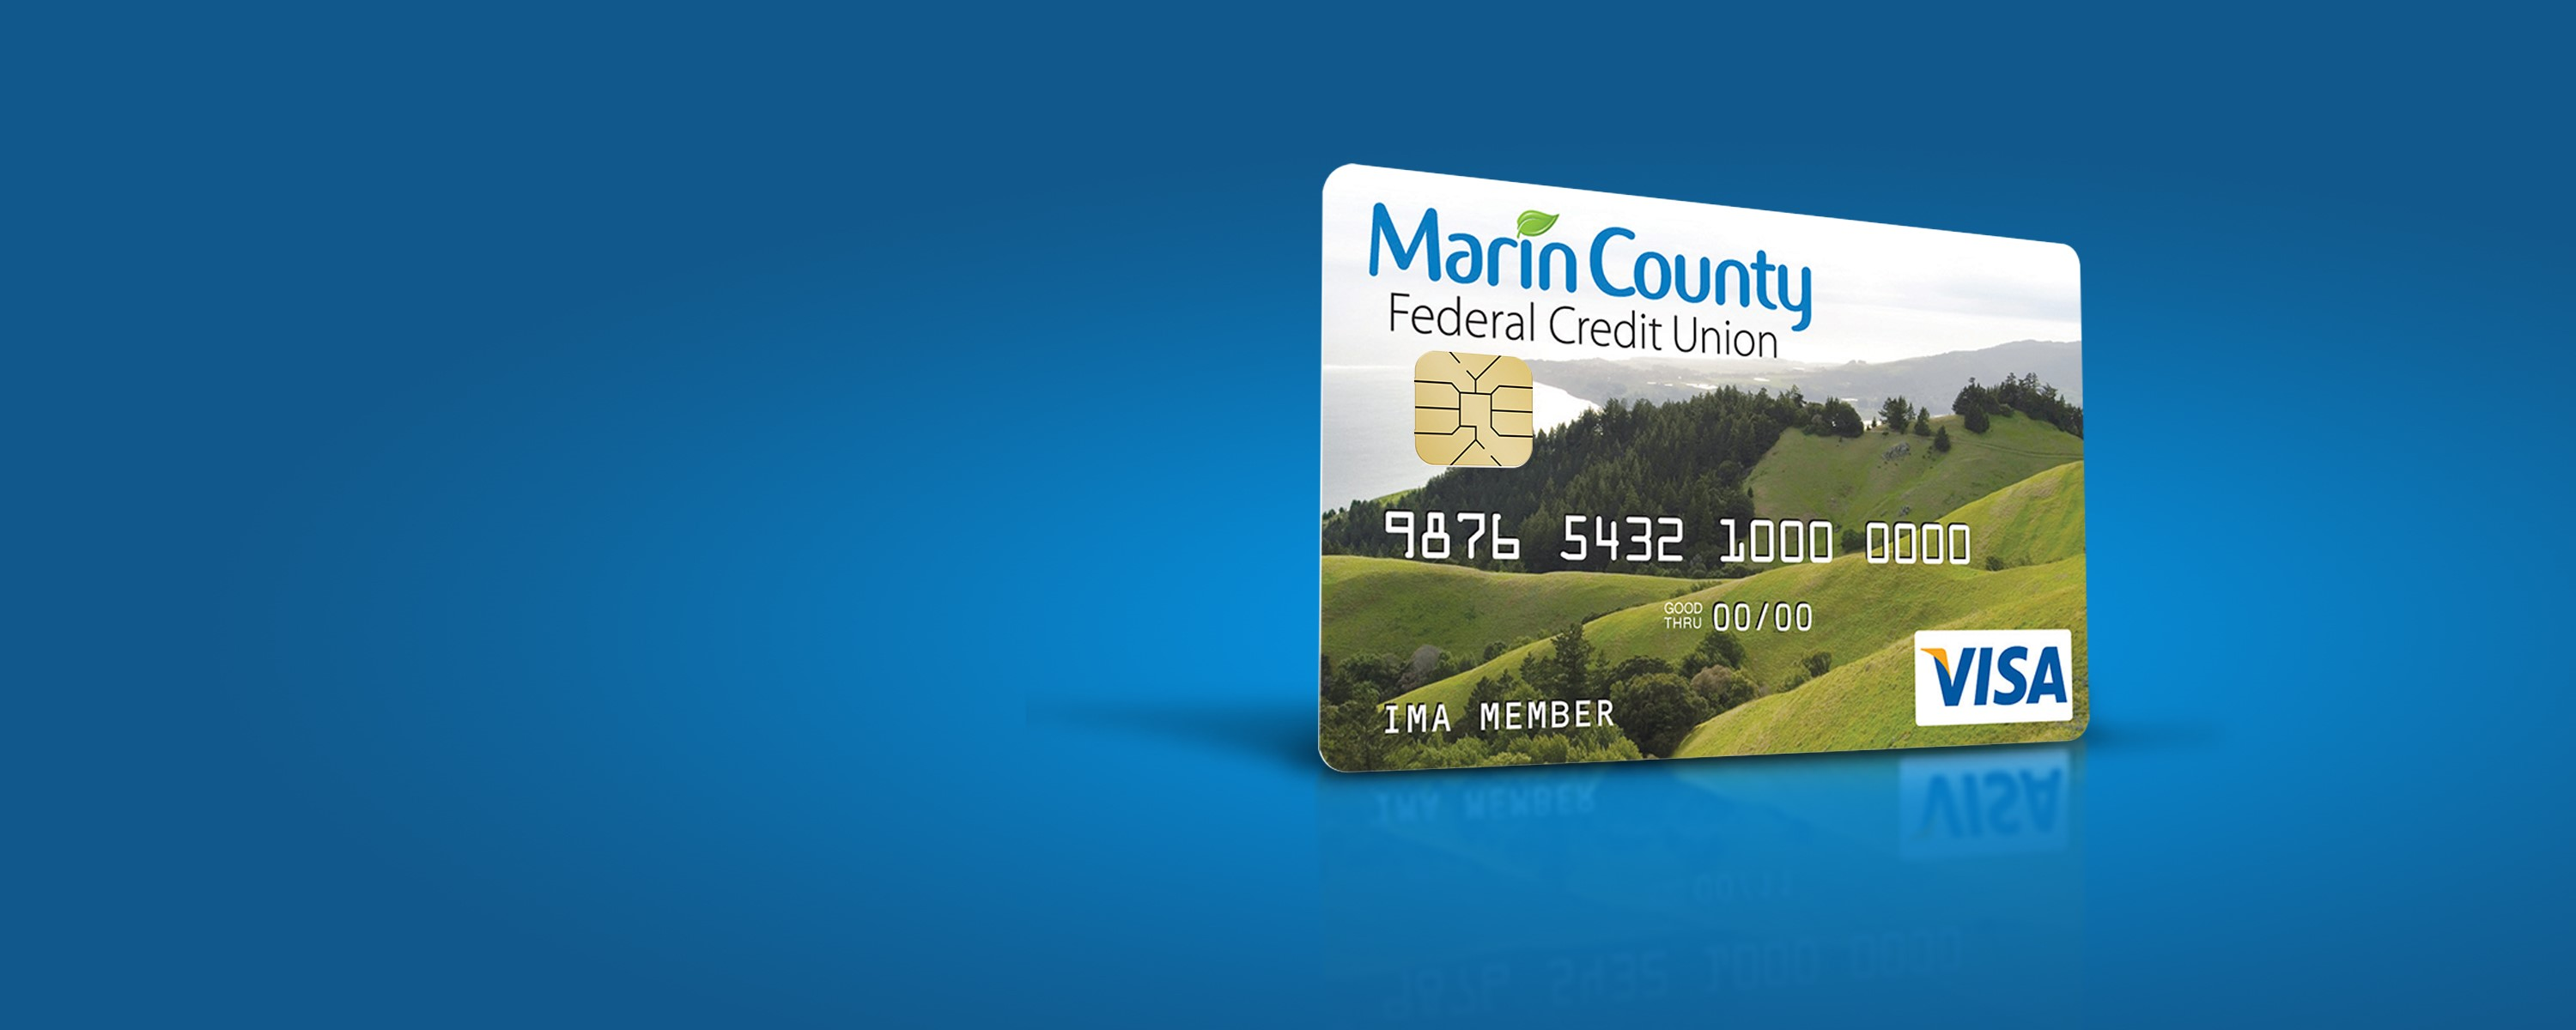 Marin Federal Credit Union Novato CHamber Redwood New Business Growth support expand